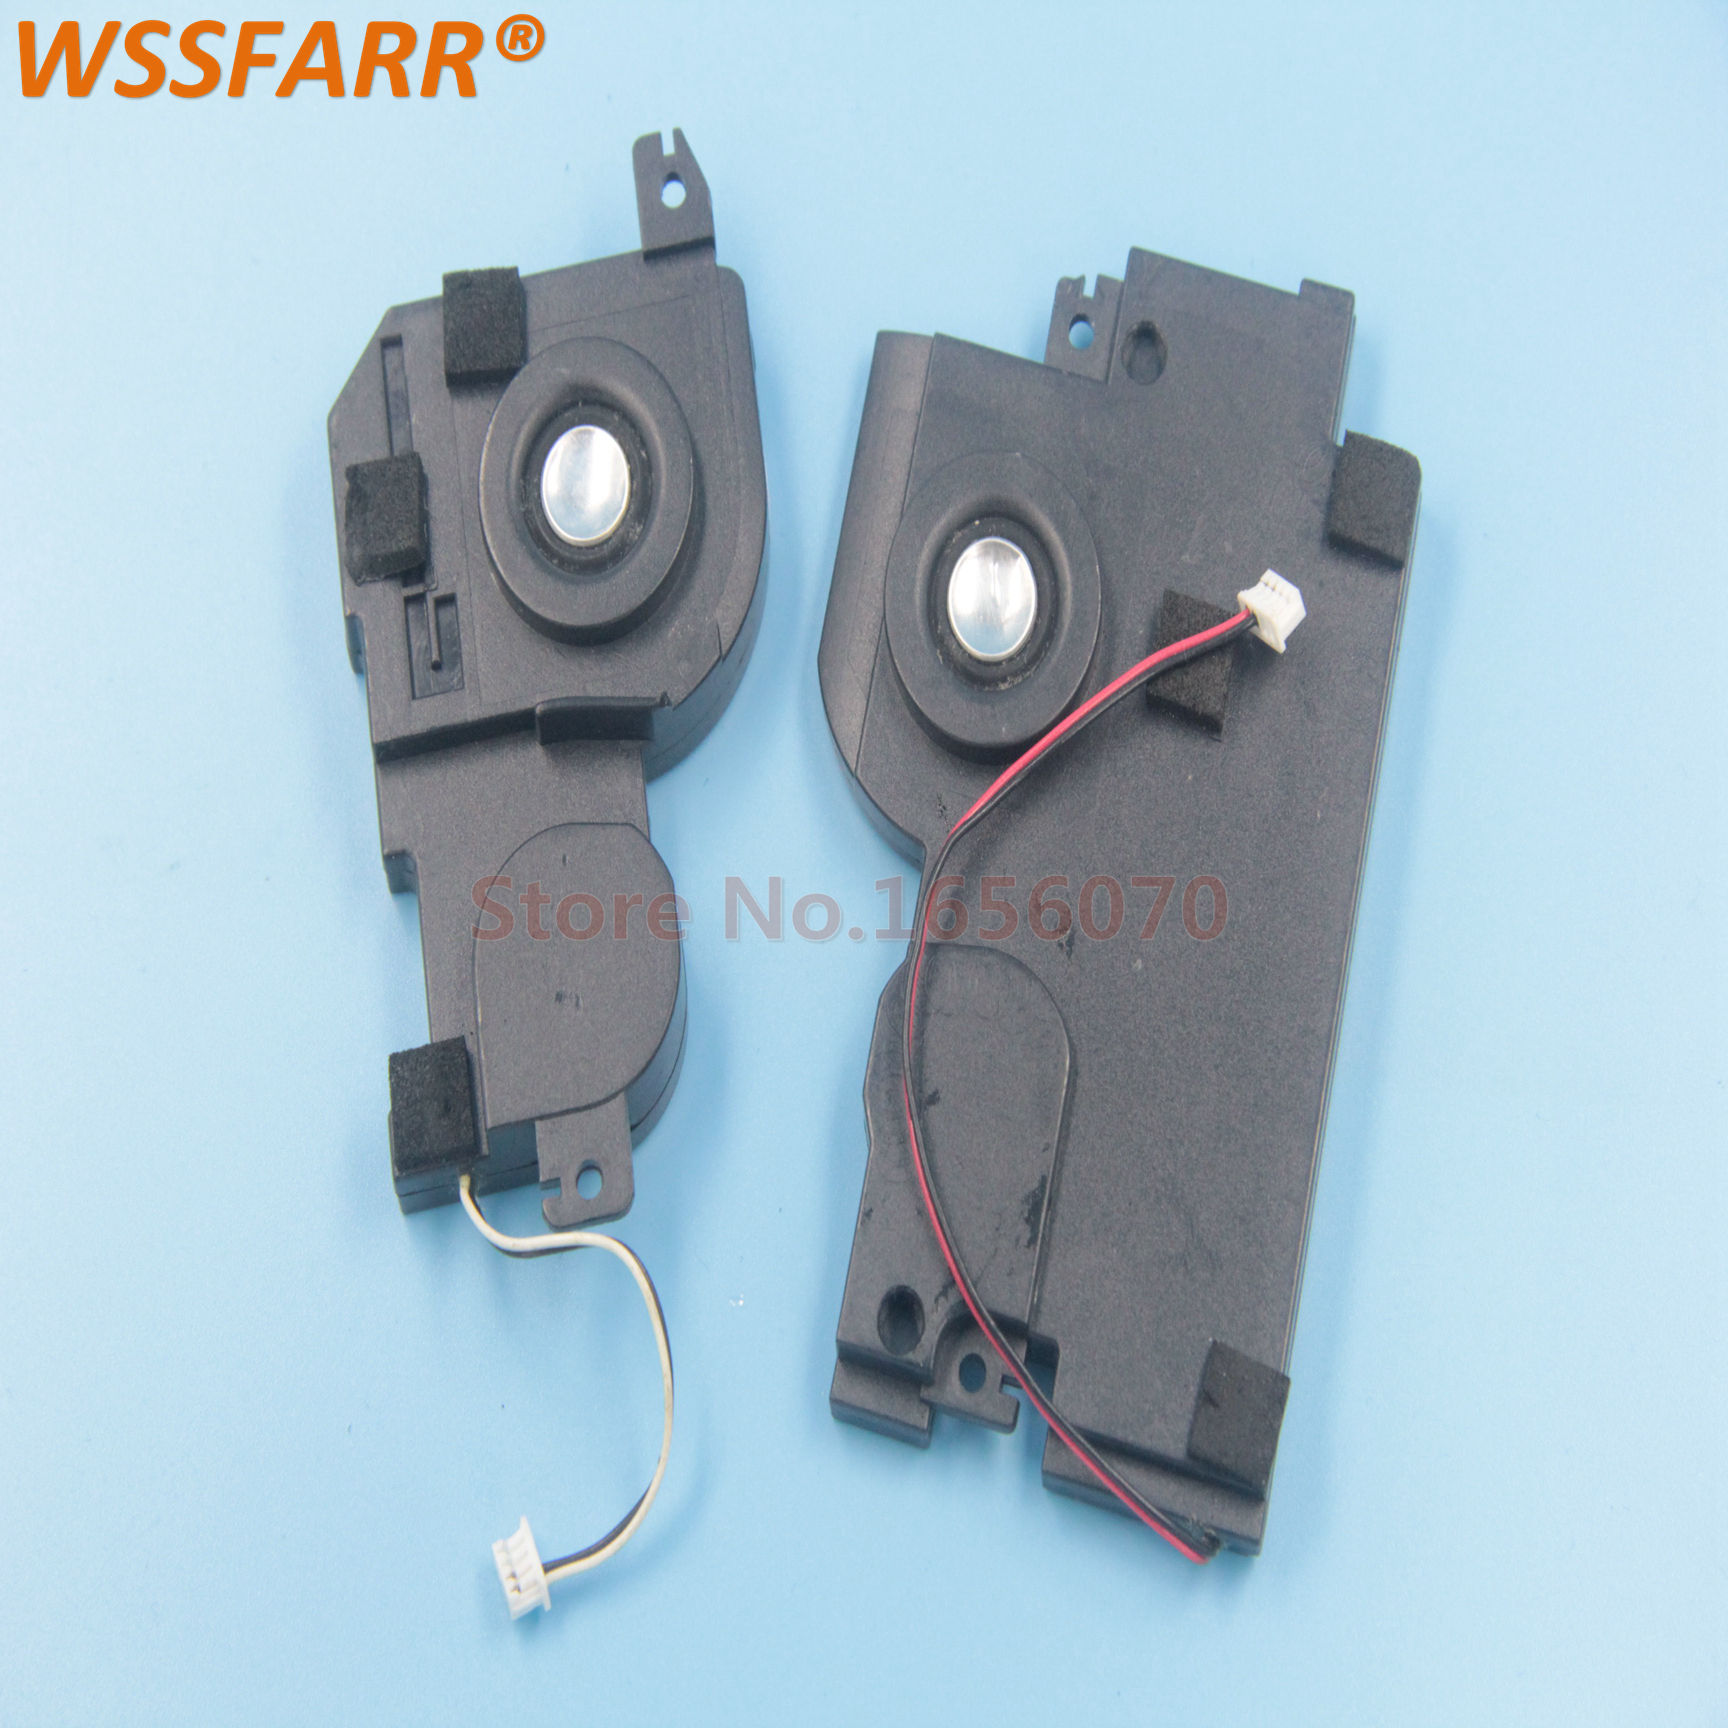 small resolution of original internal speaker for toshiba p200 p205 x200 left and right speakers pk230006e00 pk230006e10 100